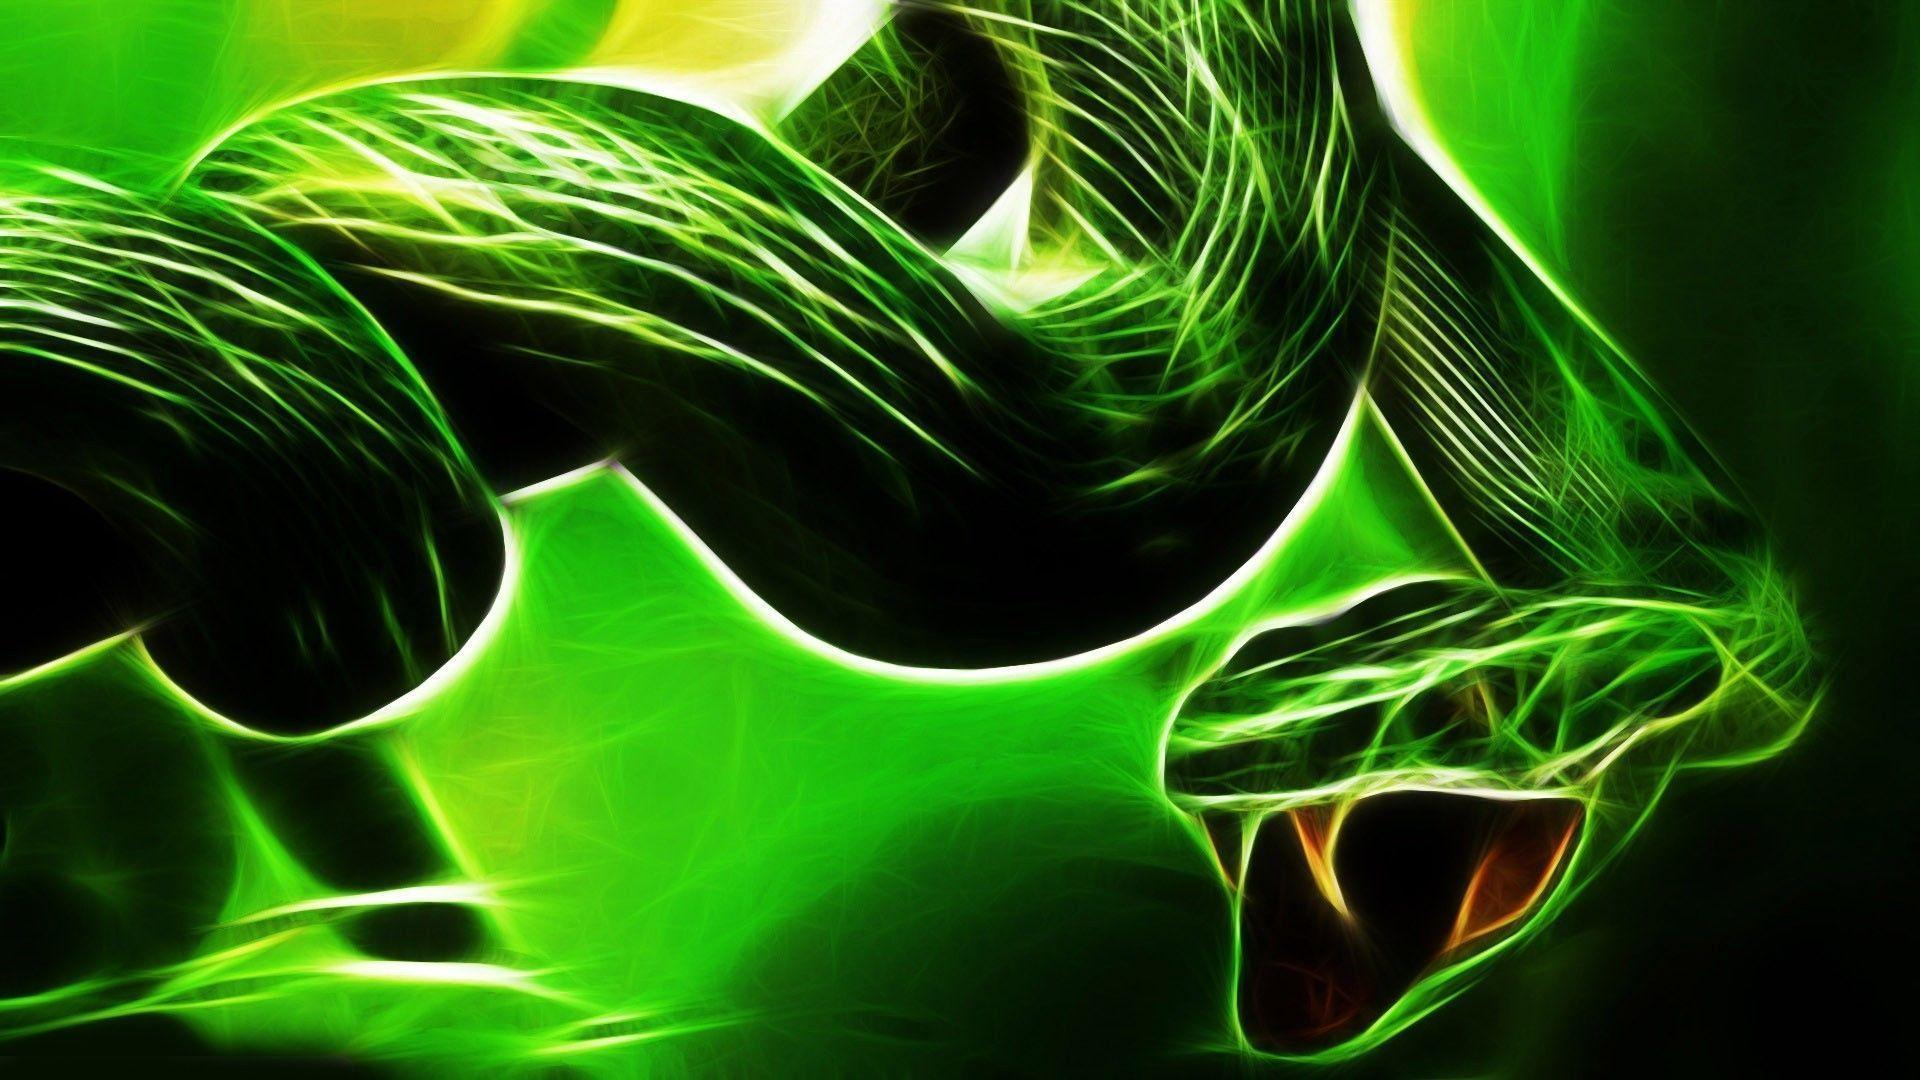 the snake wallpapers - photo #41